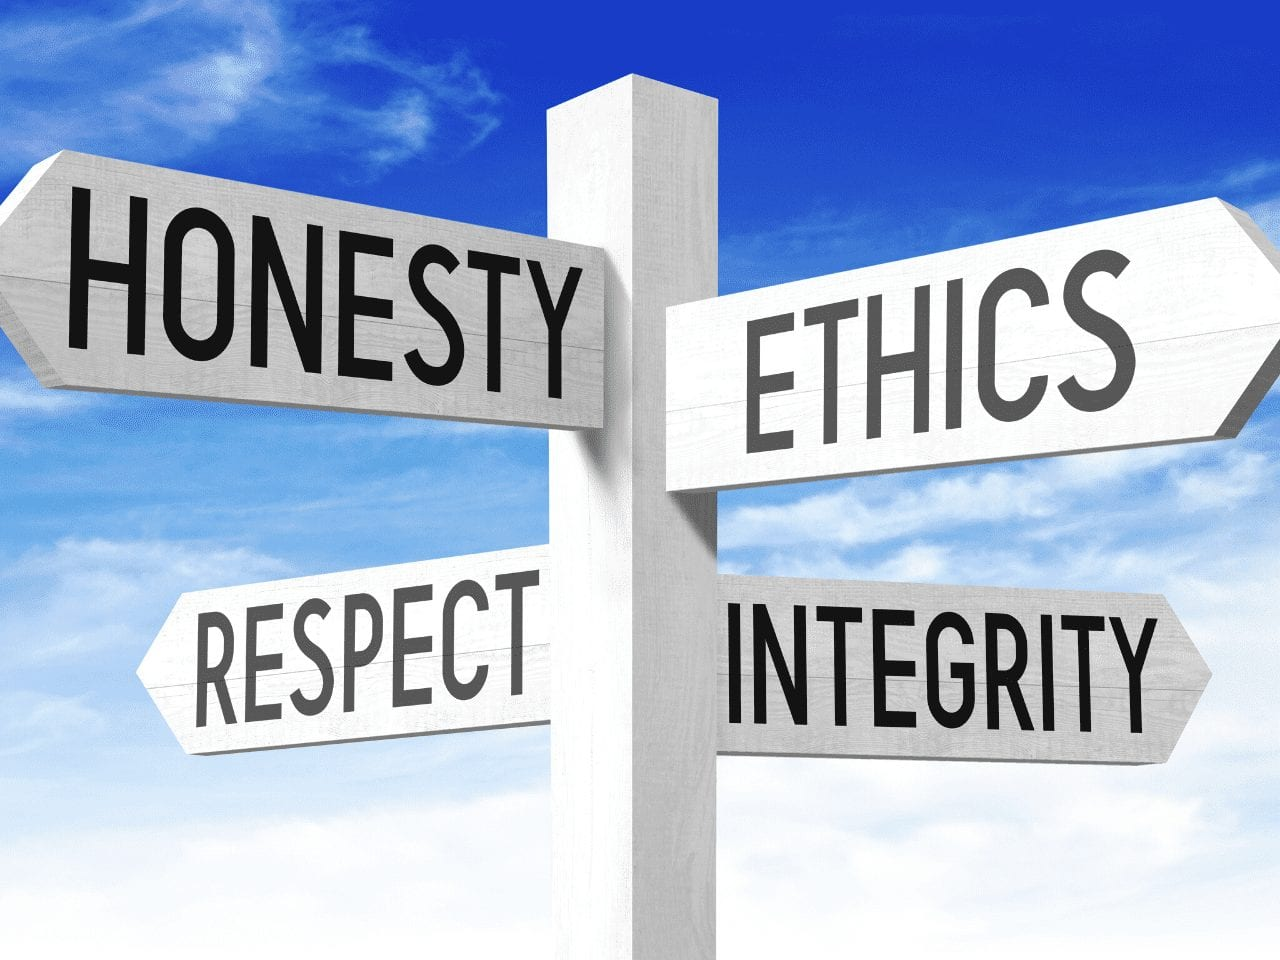 insurance honesty ethics respect